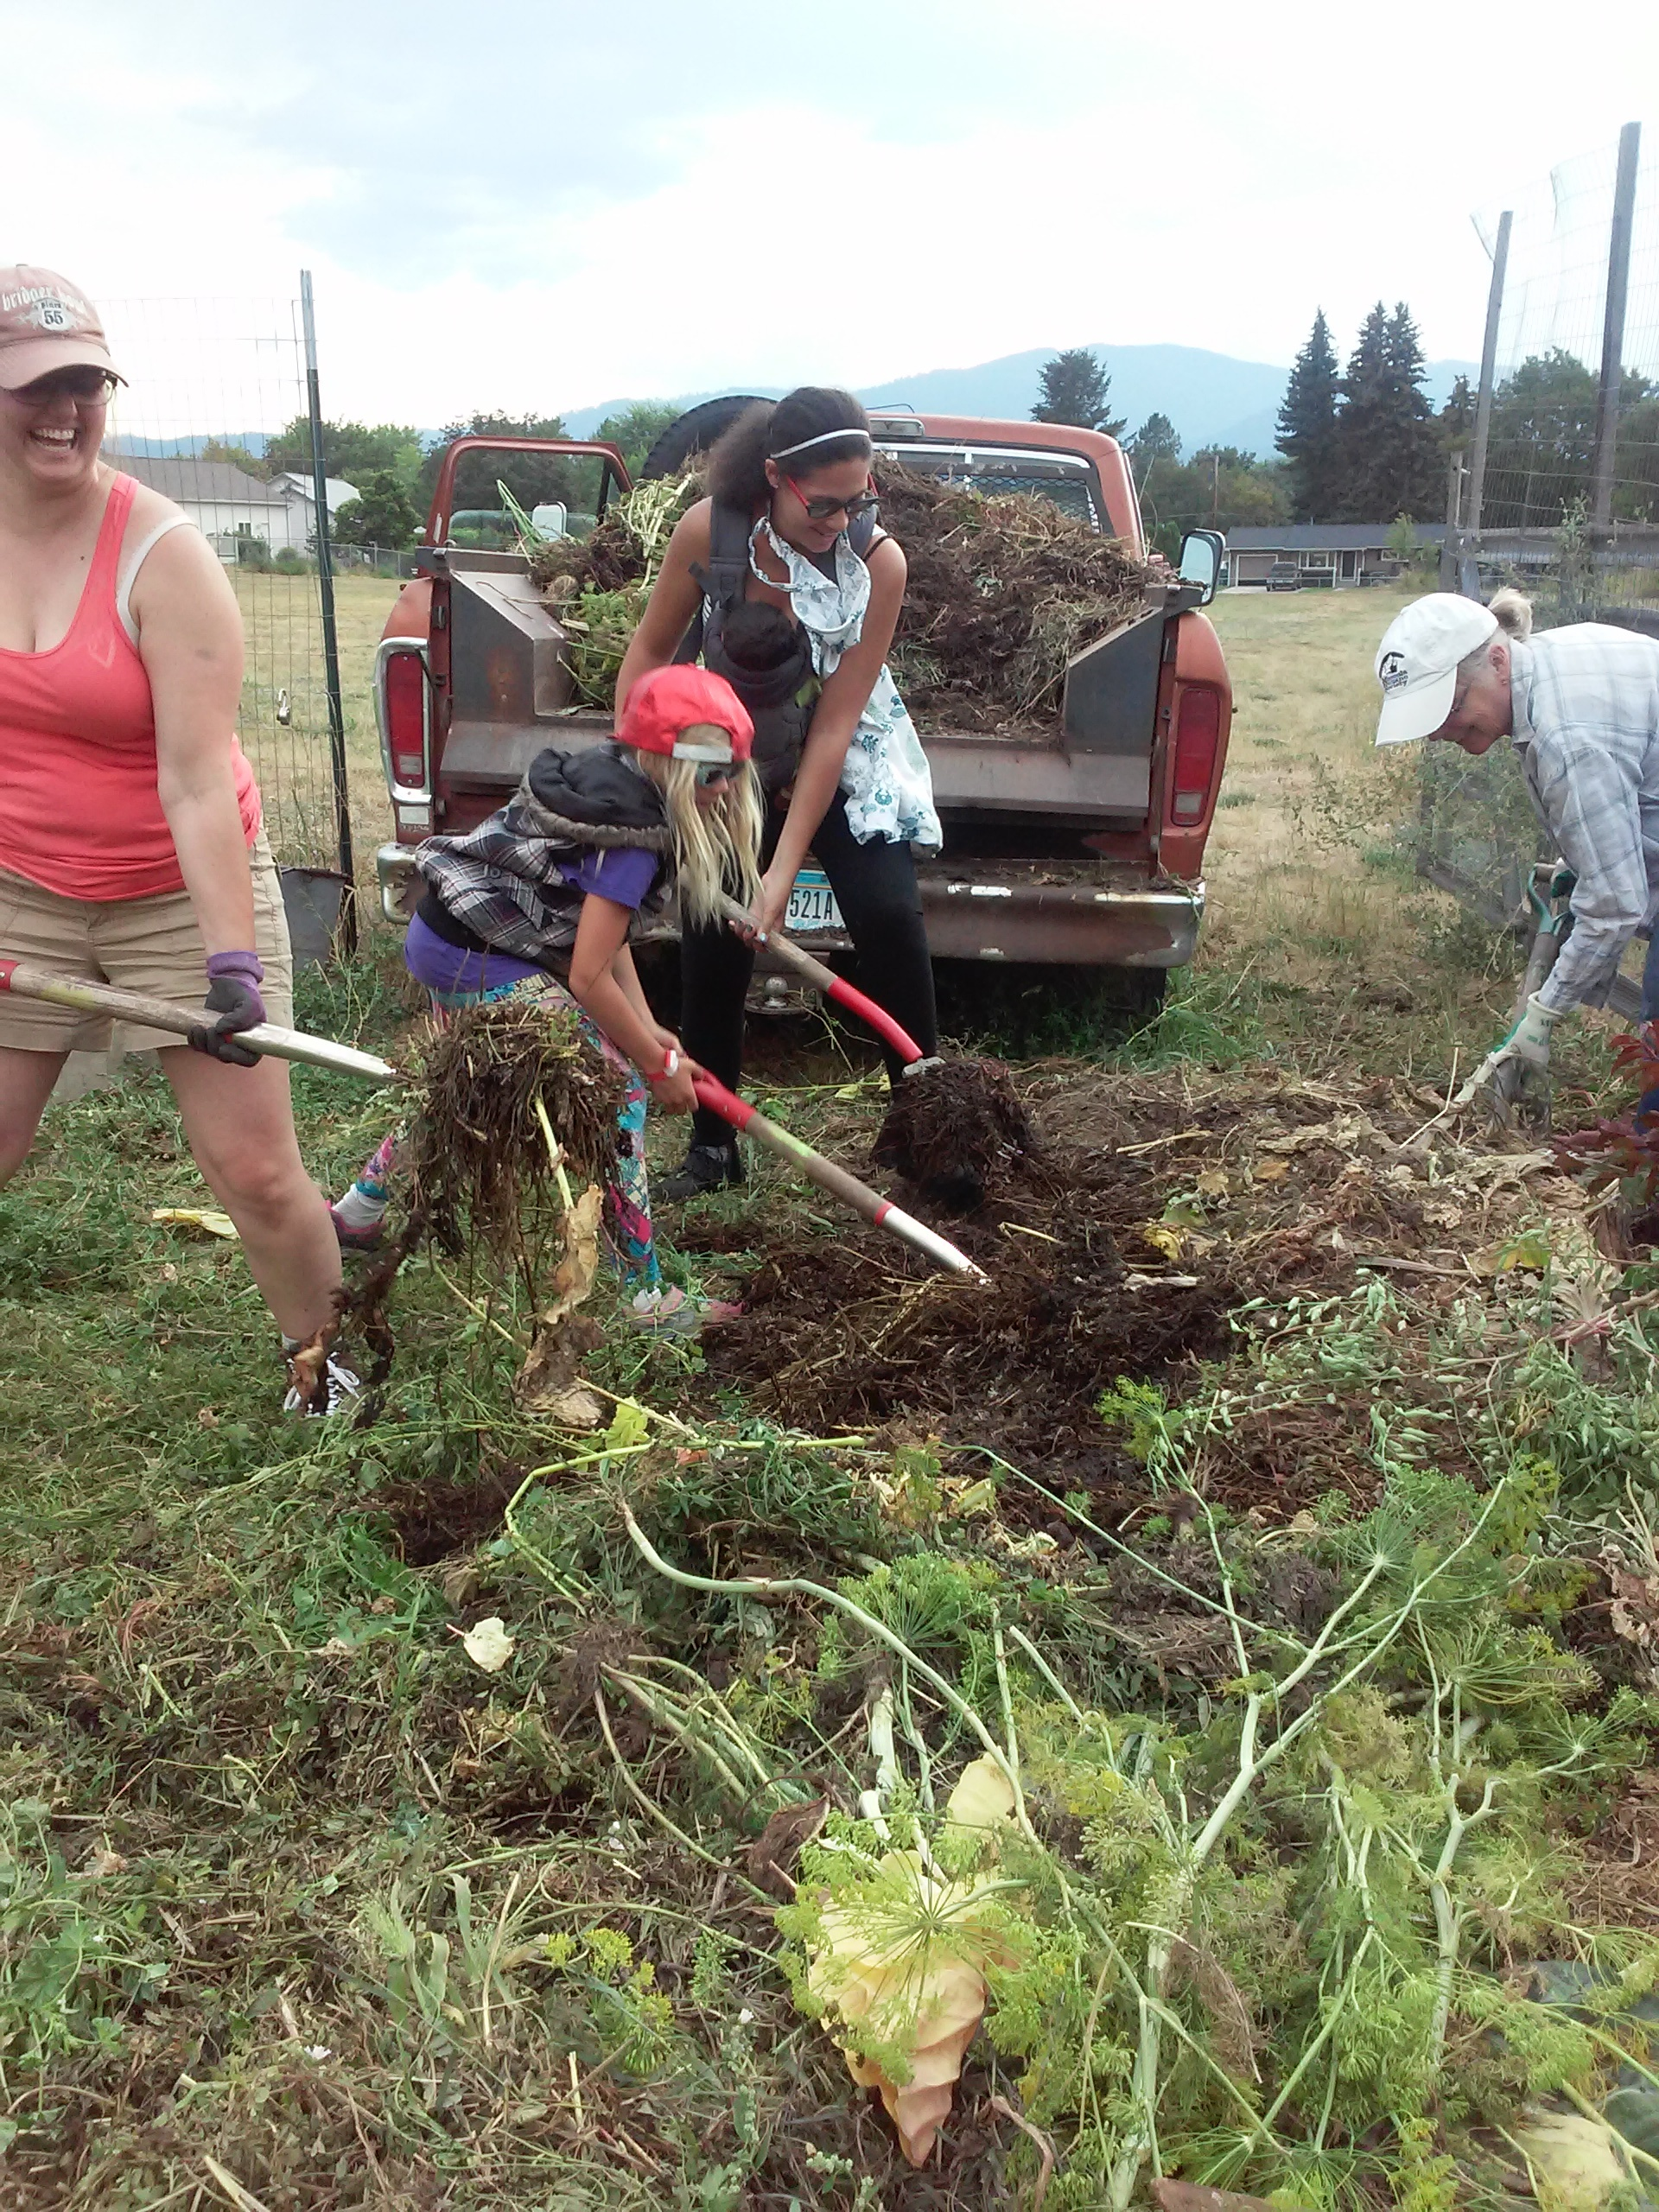 Meadow Hill leadership committee members and gardeners pitch in together to move the giant weed pile to another community garden with more space where it will eventually turn into compost.